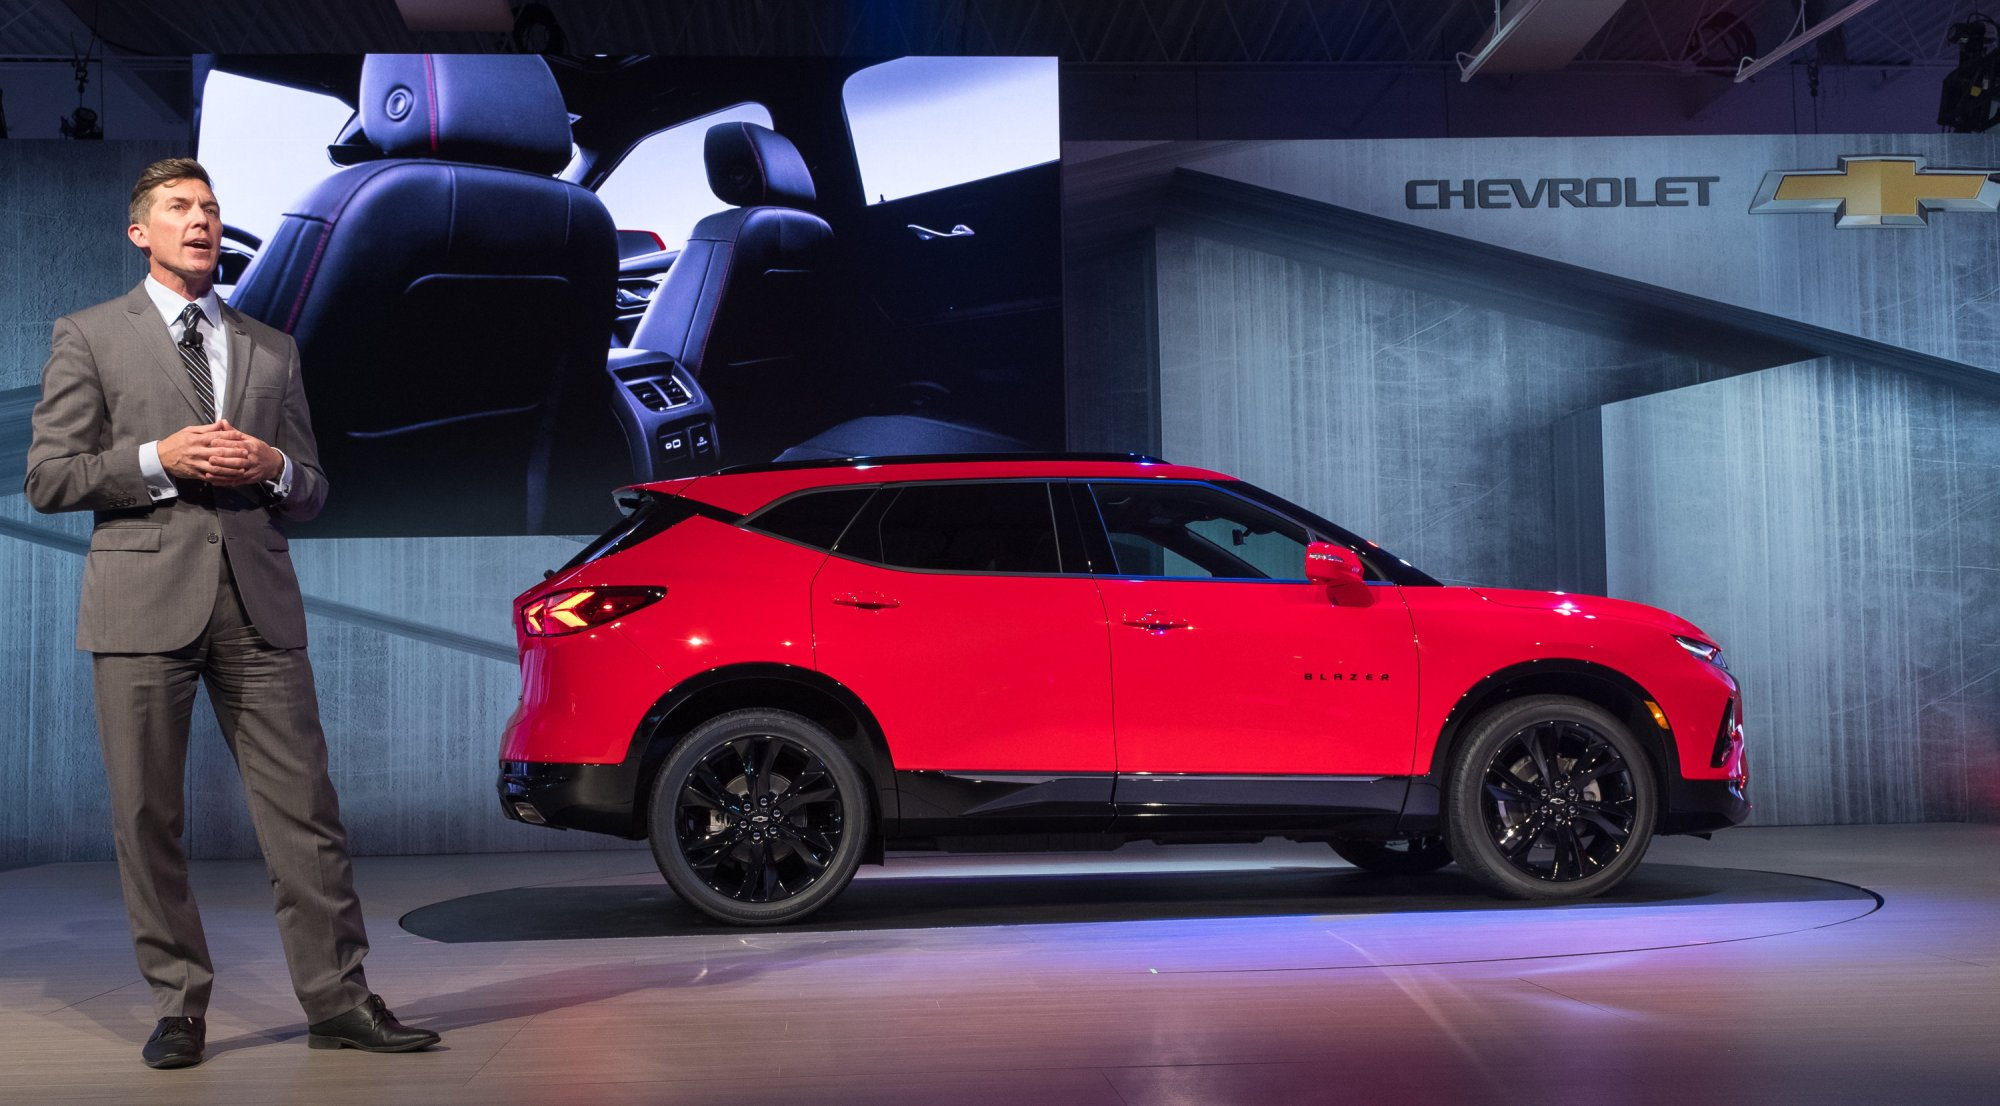 hight resolution of chevrolet blazer exterior design director mike pevovar introduces the 2019 chevrolet blazer photo by steve fecht for chevrolet